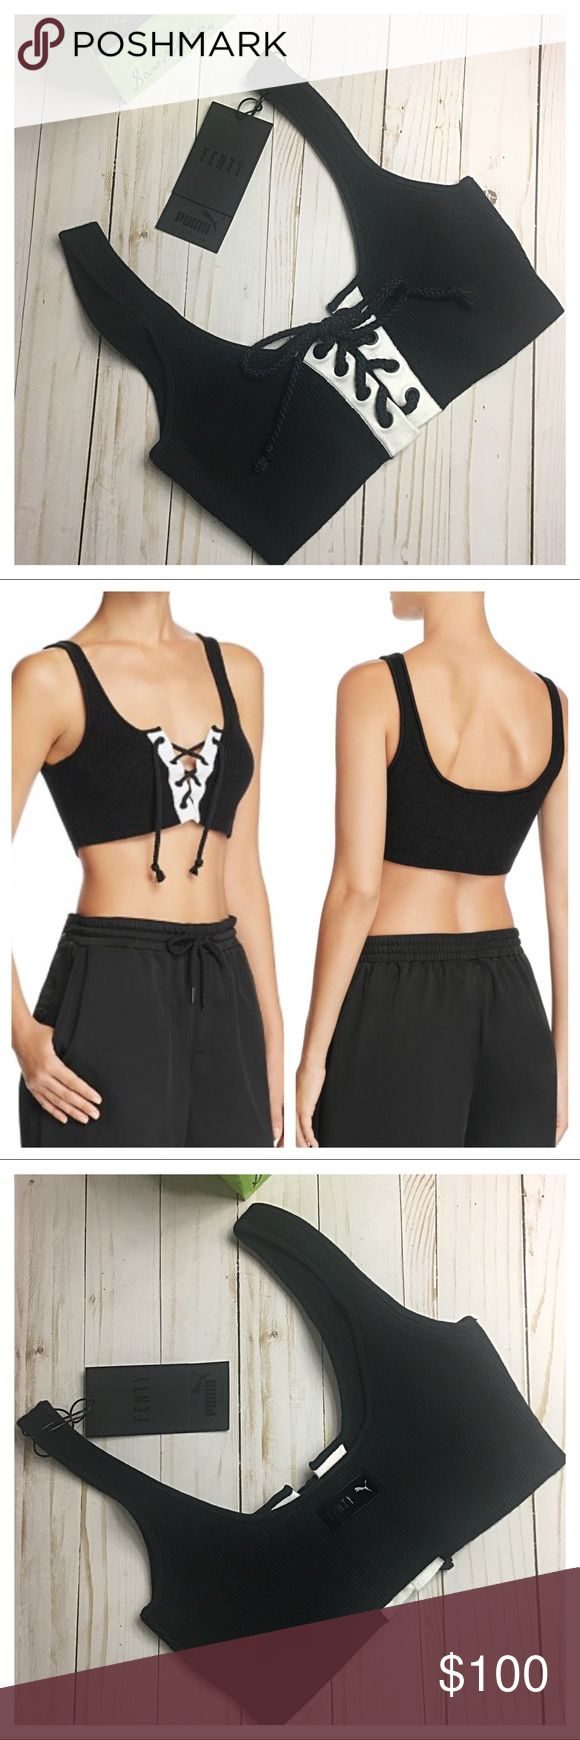 """NWT Fenty Puma by Rihanna Lace-Up Long Bra NWT Fenty Puma by Rihanna Lace-Up Long Bra, Black/White * Fenty Puma by Rihanna ribbed knit bra with front lacing detail. * Scoop neckline; logo patch at back. * Sleeveless; cut-in shoulders. * Approximately 13"""" from high point shoulder  to hem  * Fits true to size * Cotton/nylon/spandex; contrast: cotton  * Hand wash. * Imported No TRADES. Please use offer button to negotiate. Thanks! Puma Intimates & Sleepwear Bras"""